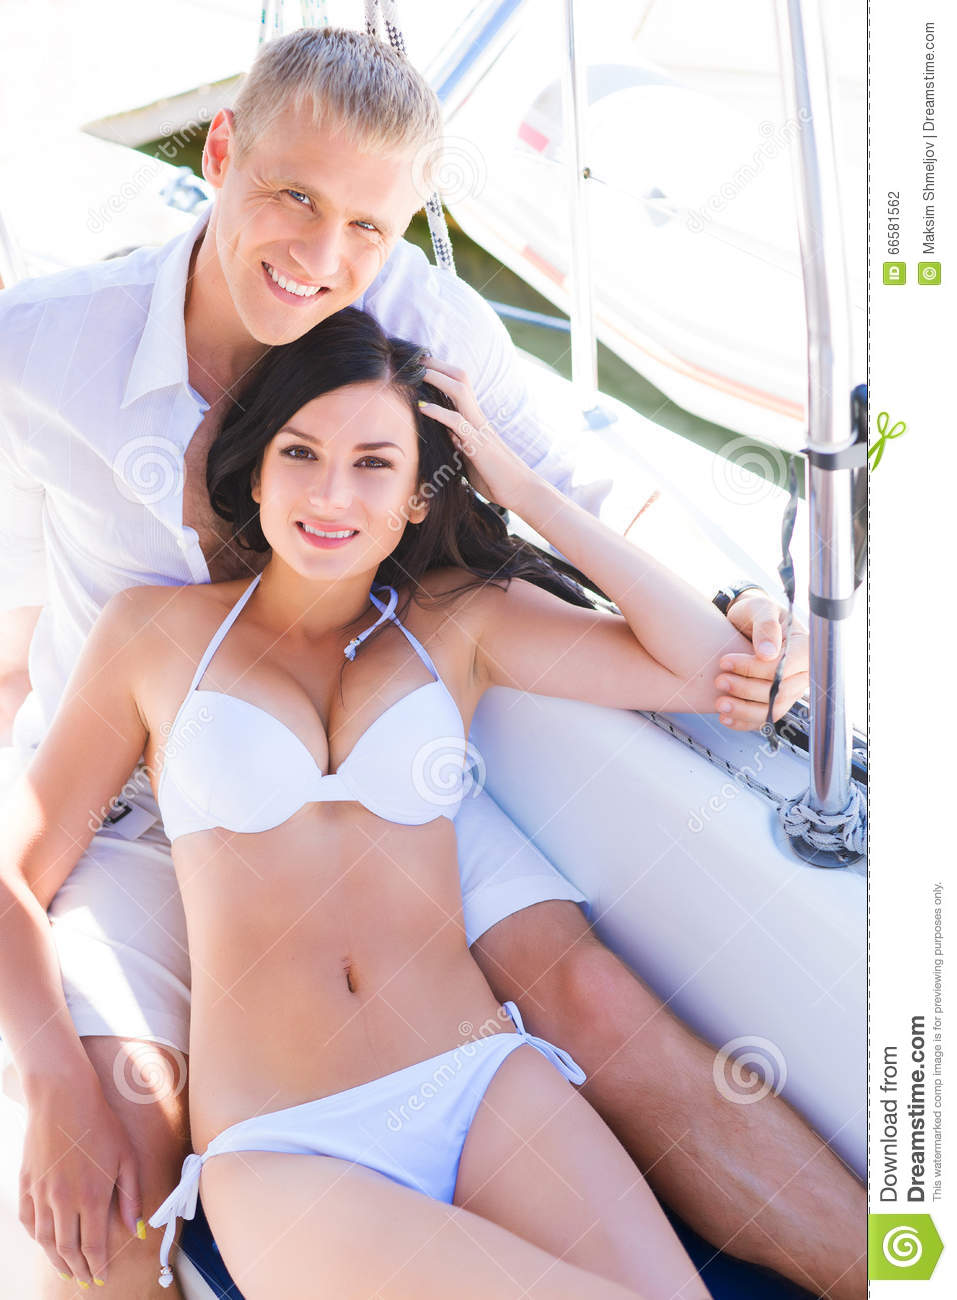 f8b05a1ab3 Handsome and rich men and a beautiful and women in a swimsuit relaxing on a sailing  boat